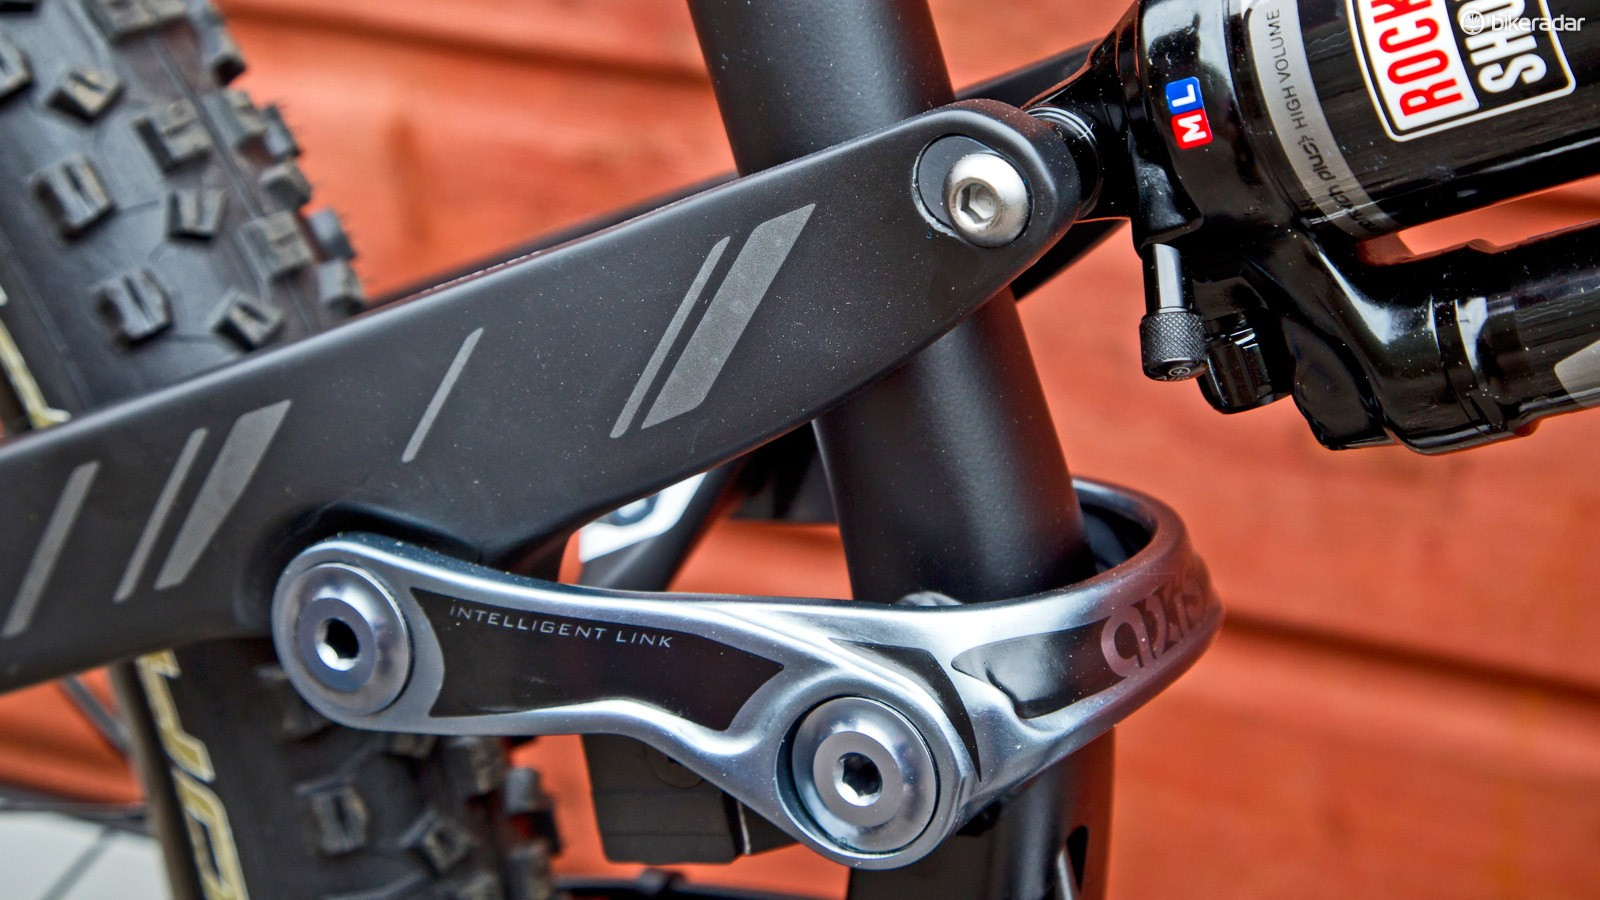 A reversible chip at the rear shock mount adjusts the head angle and bottom bracket height. The high setting gives you a 66.4 degree/344mm combination with the low setting being 65.8/337mm